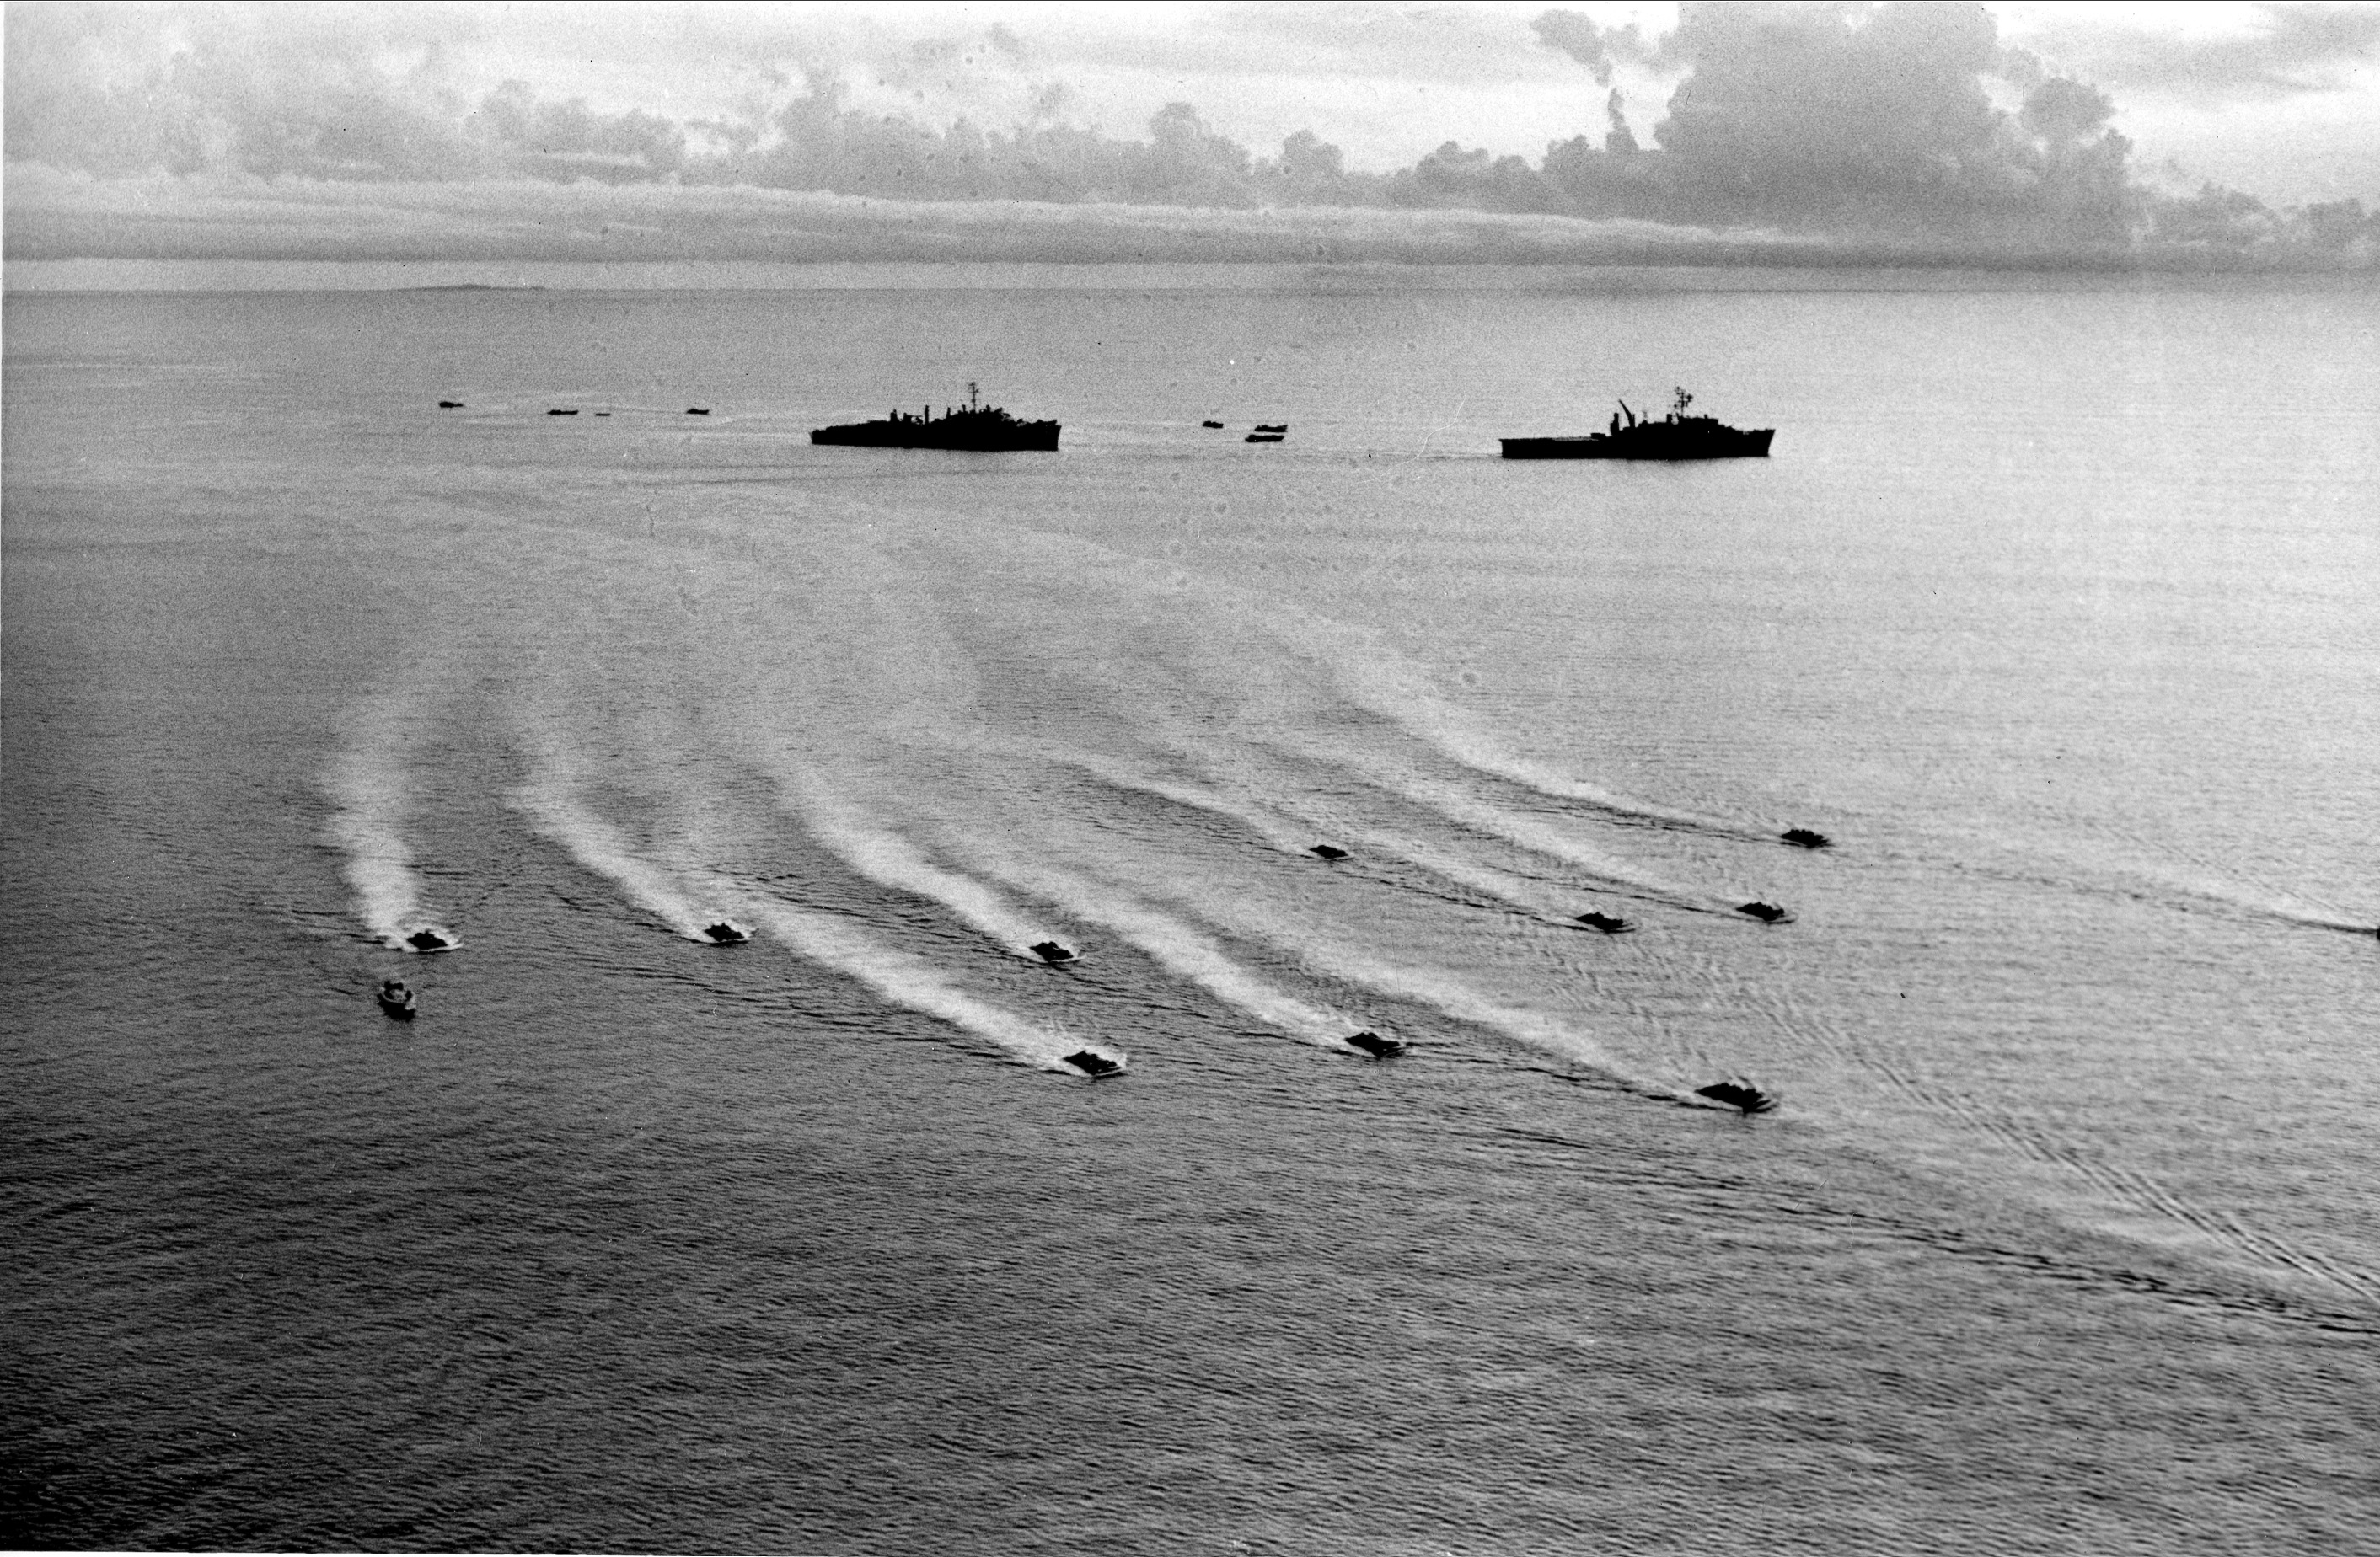 U.S. Marines are brought ashore to in a swarm of landing crafts near the Vietnam demilitarized zone on Sept. 15, 1966. (Henri Huet/AP)